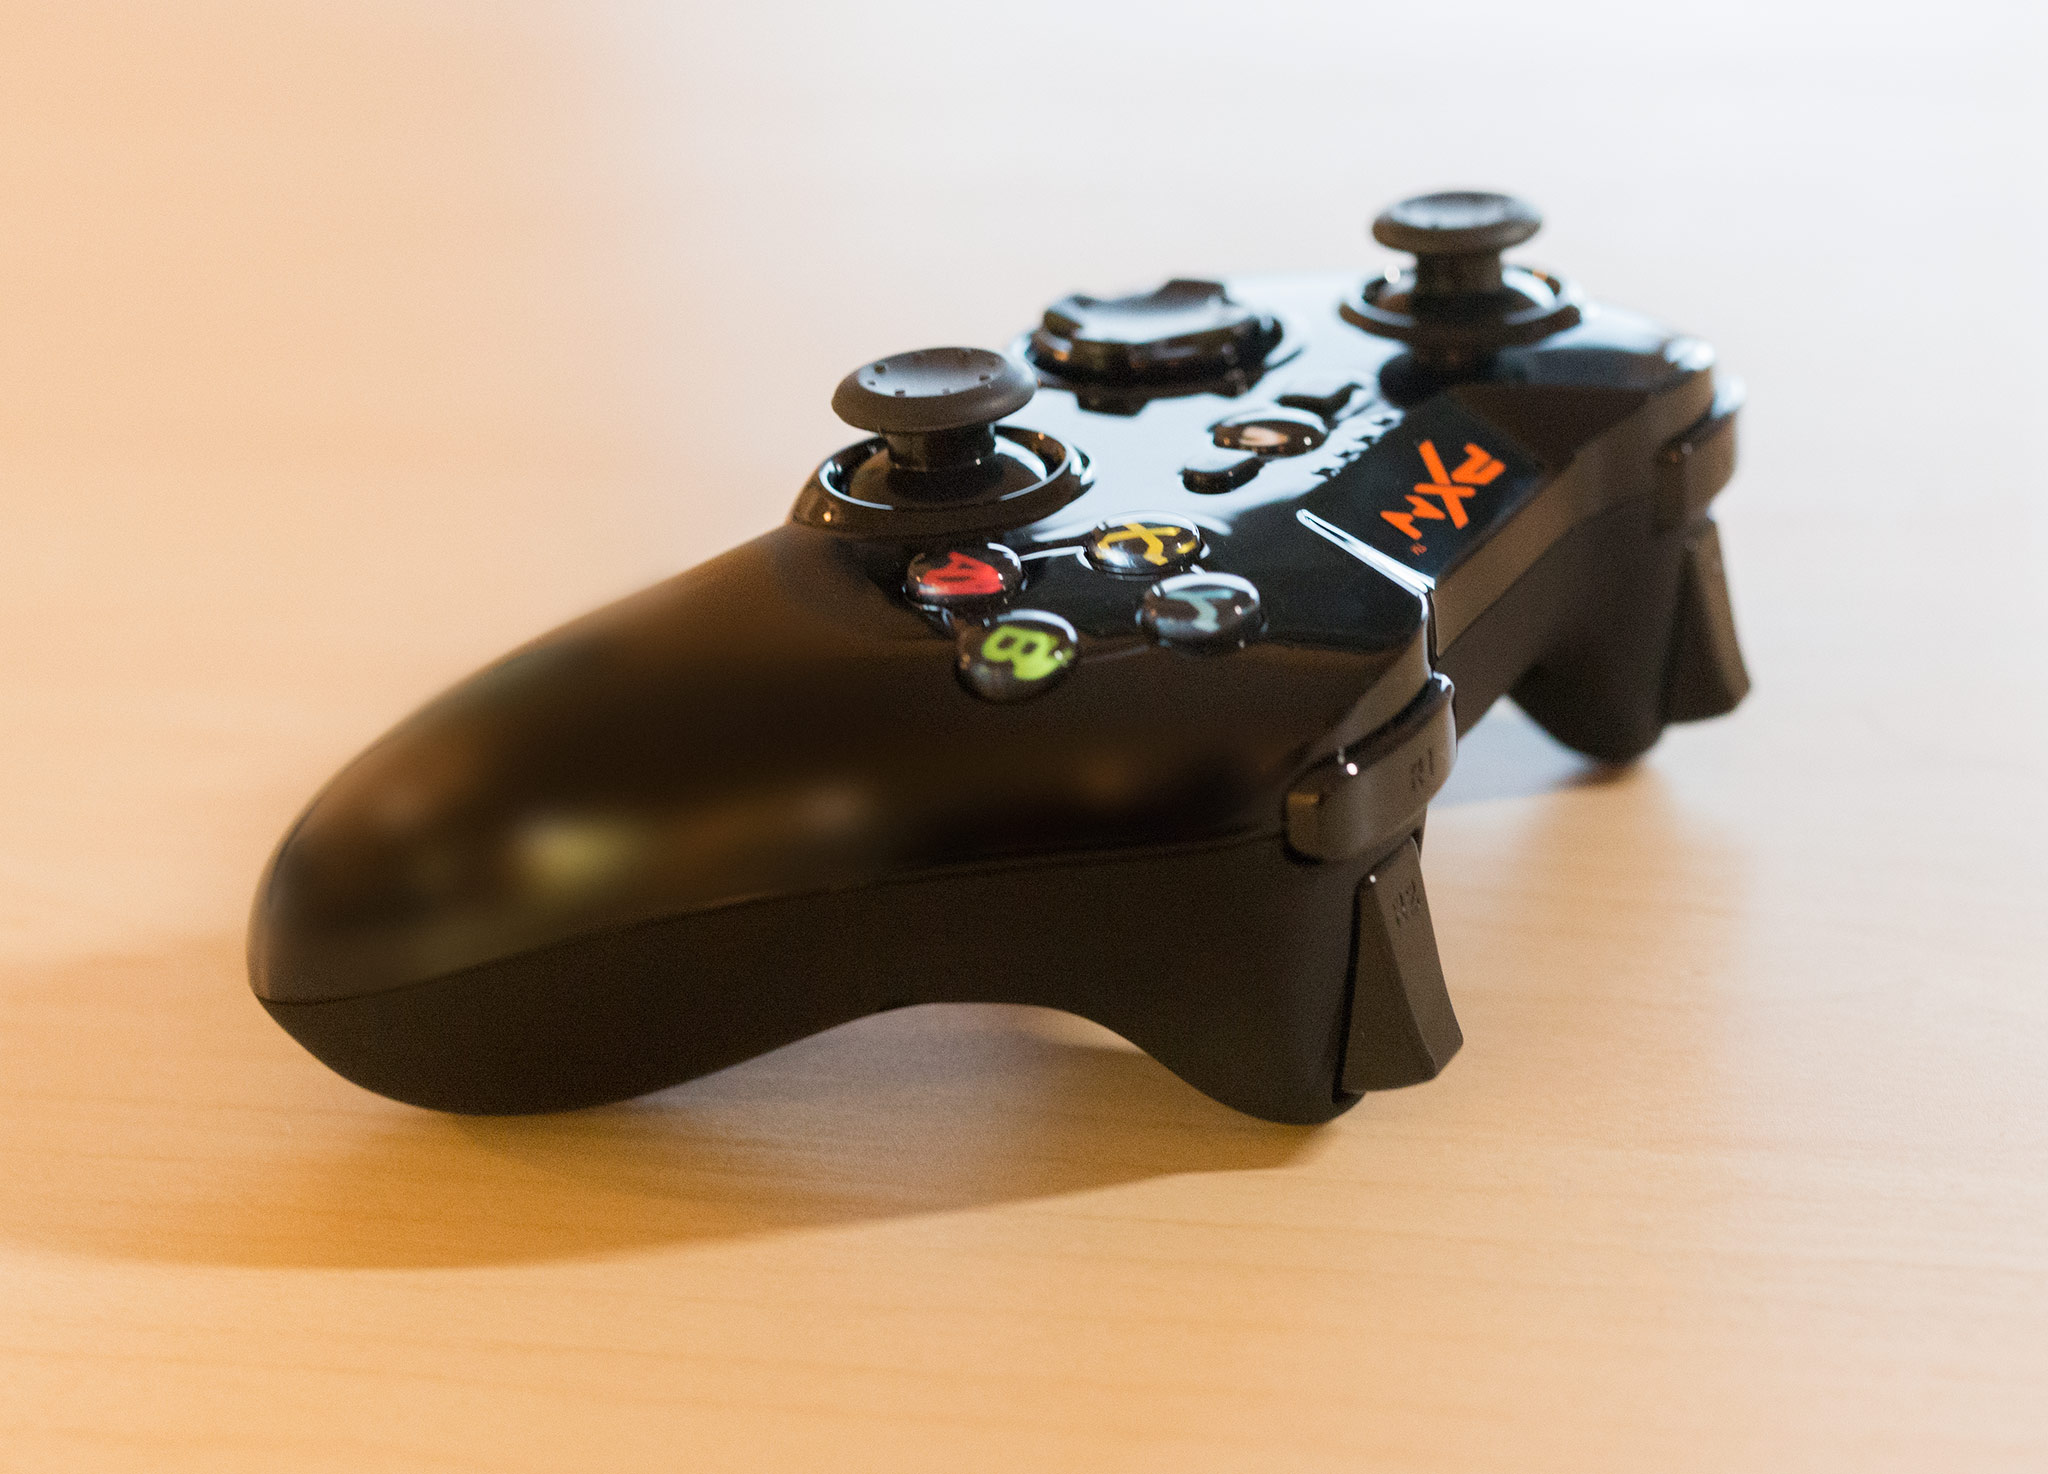 High quality triggers and buttons